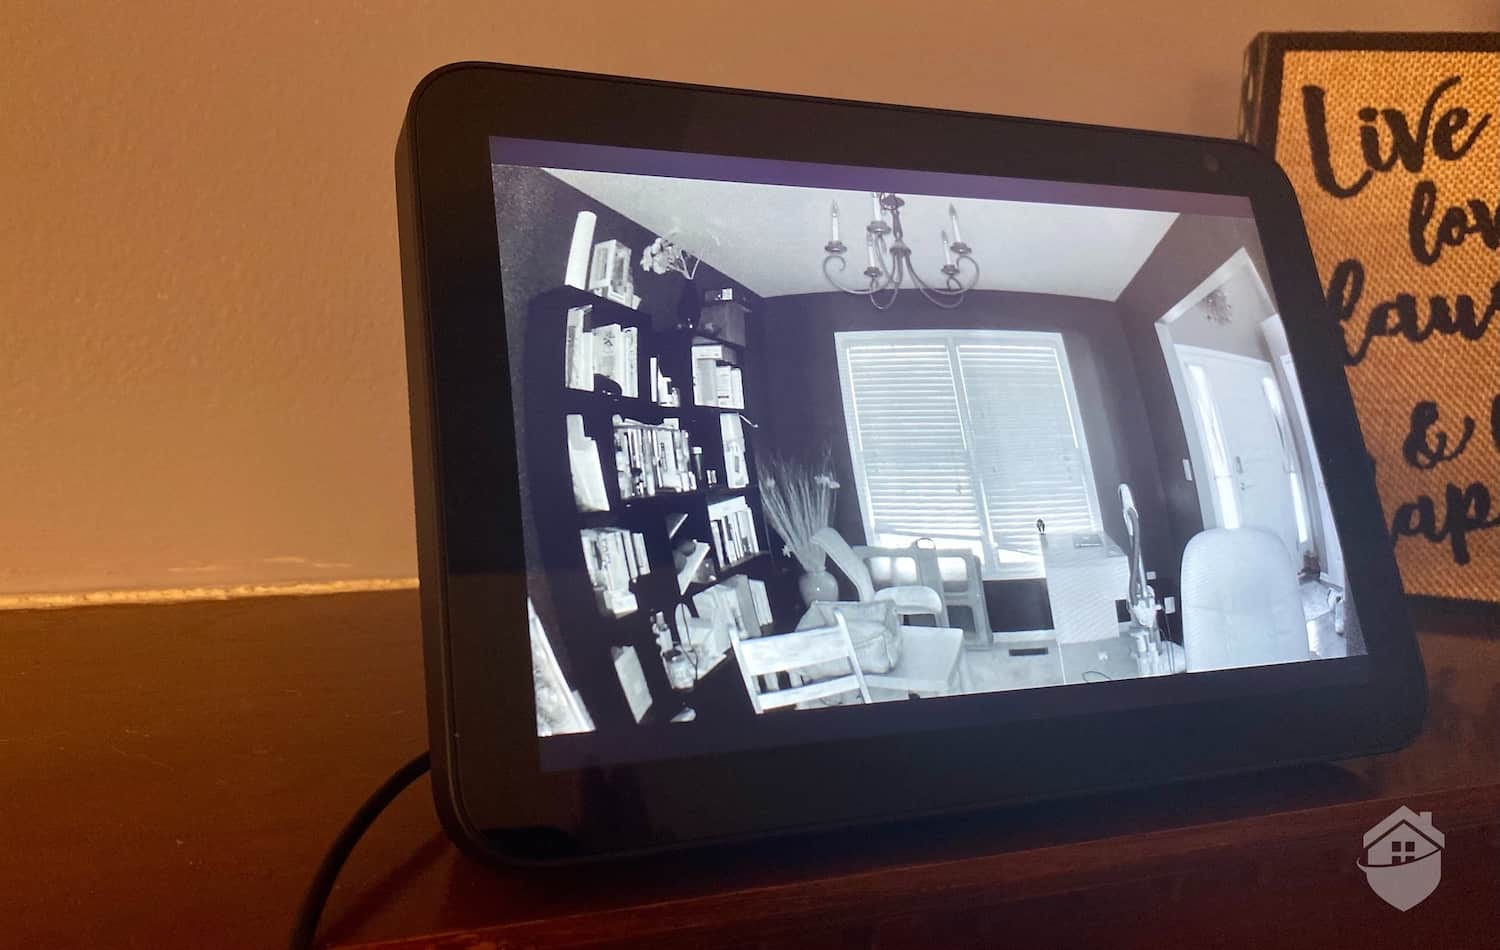 Canary Pro on the Alexa Viewing Night Vision